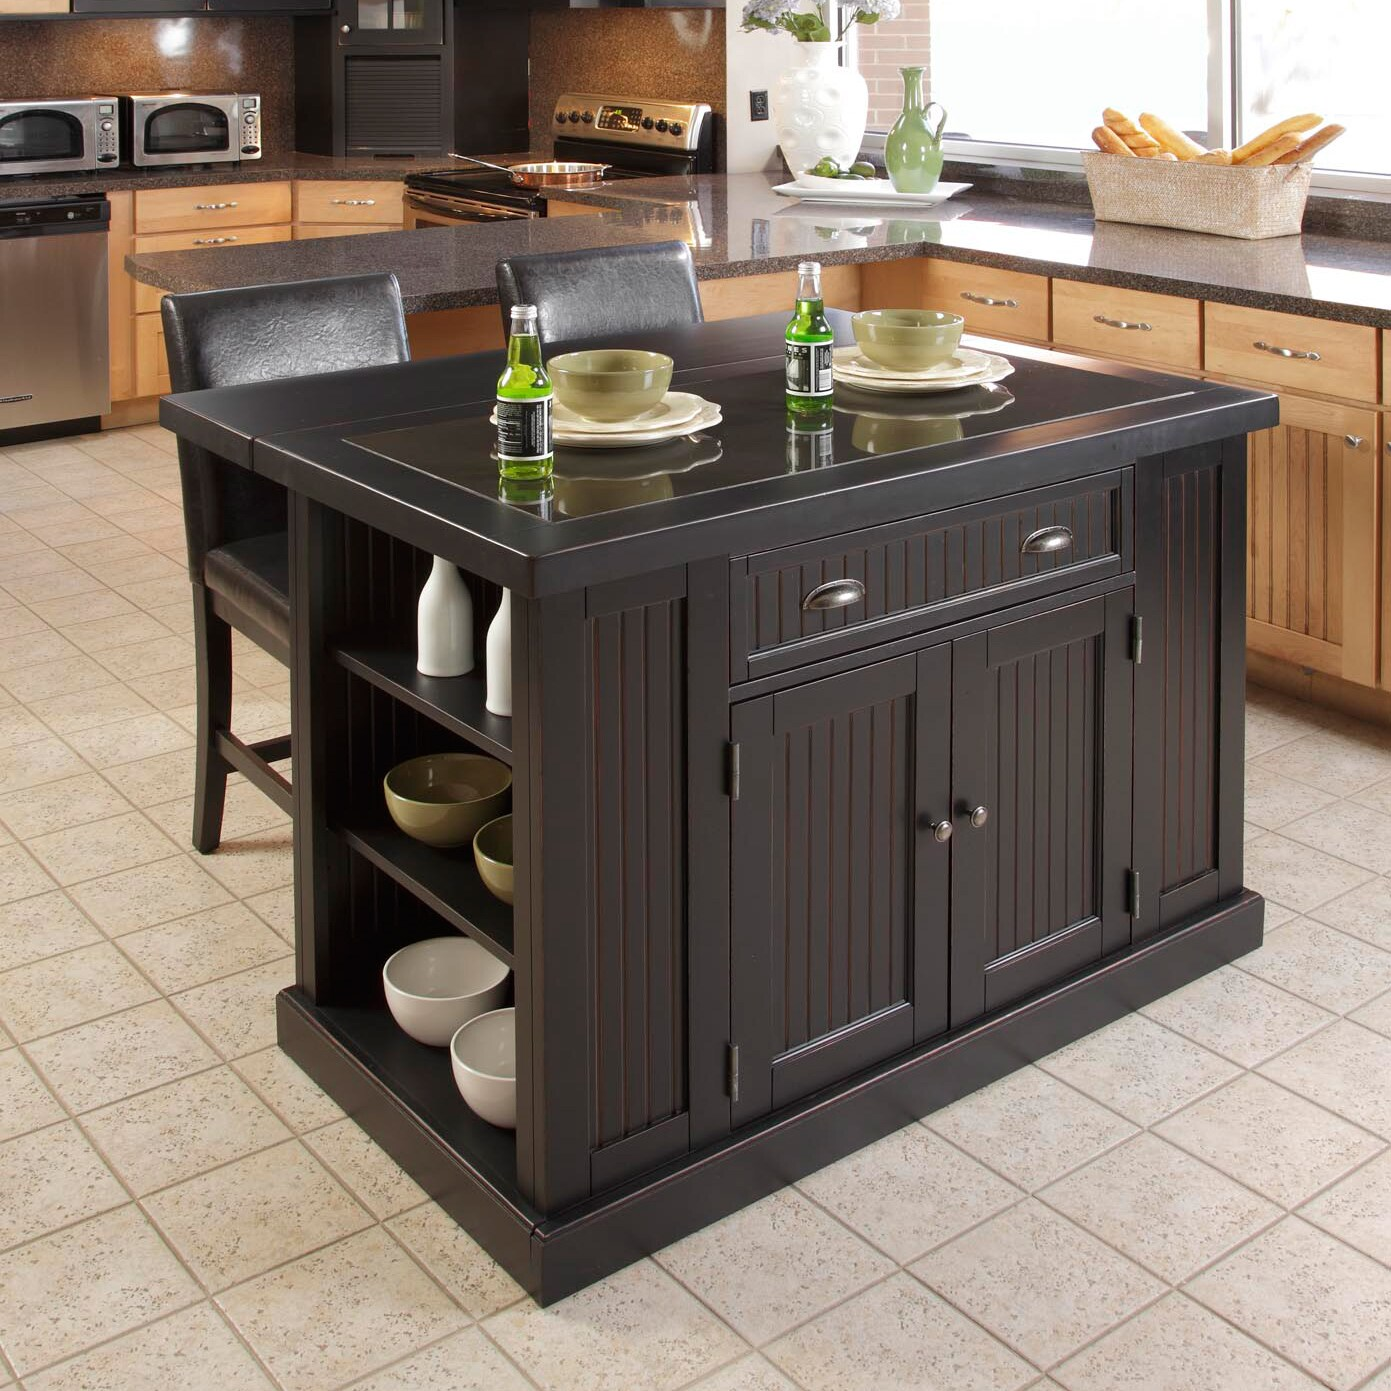 Black Island Kitchen Buy Black Kitchen Islands Online At Overstock Our Best Kitchen